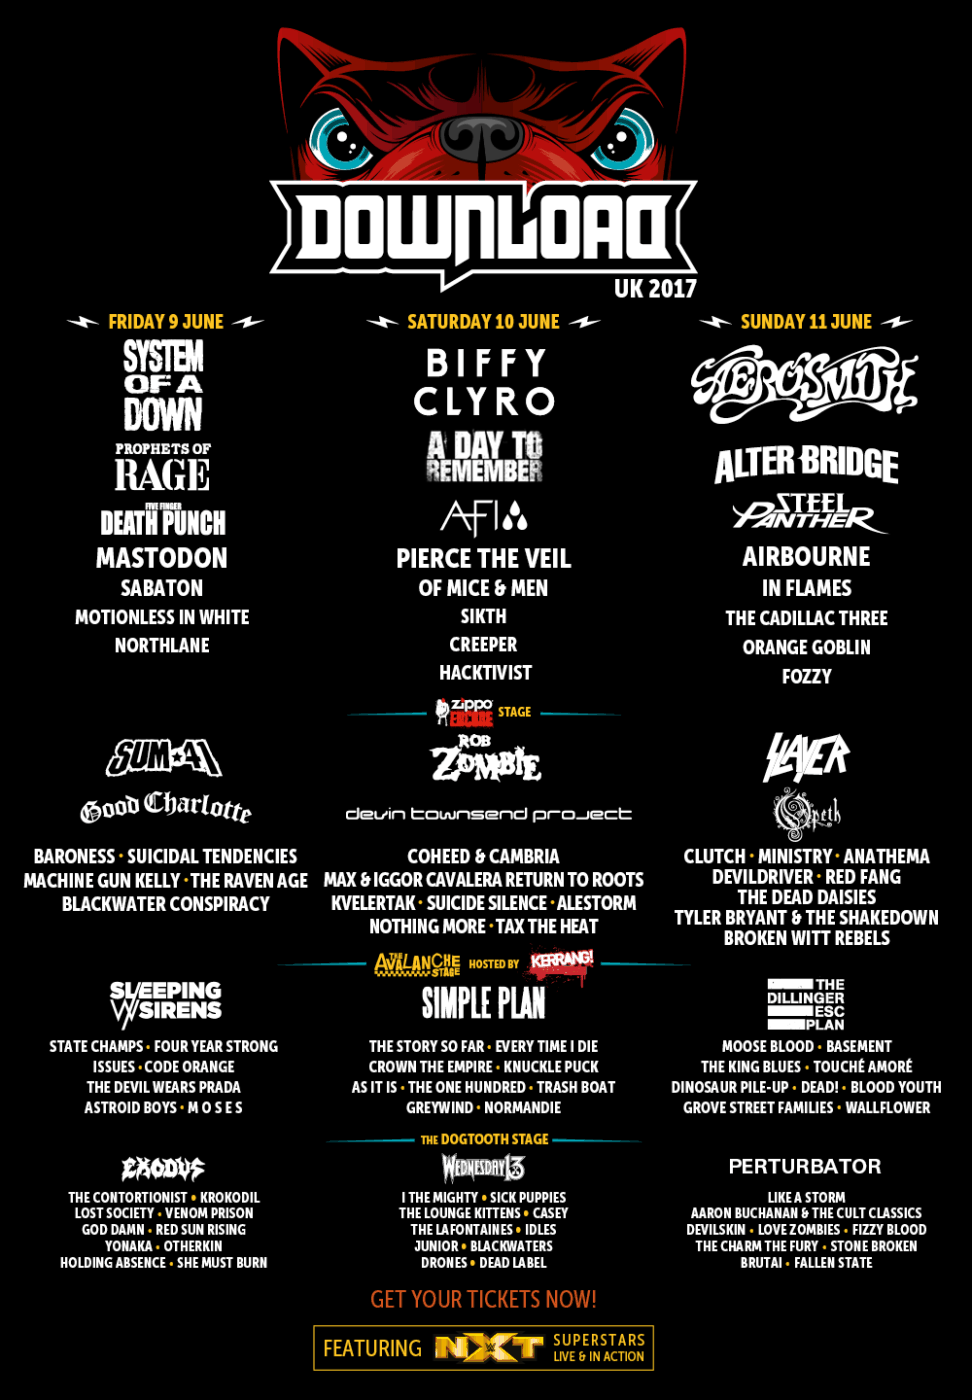 Download Festival!